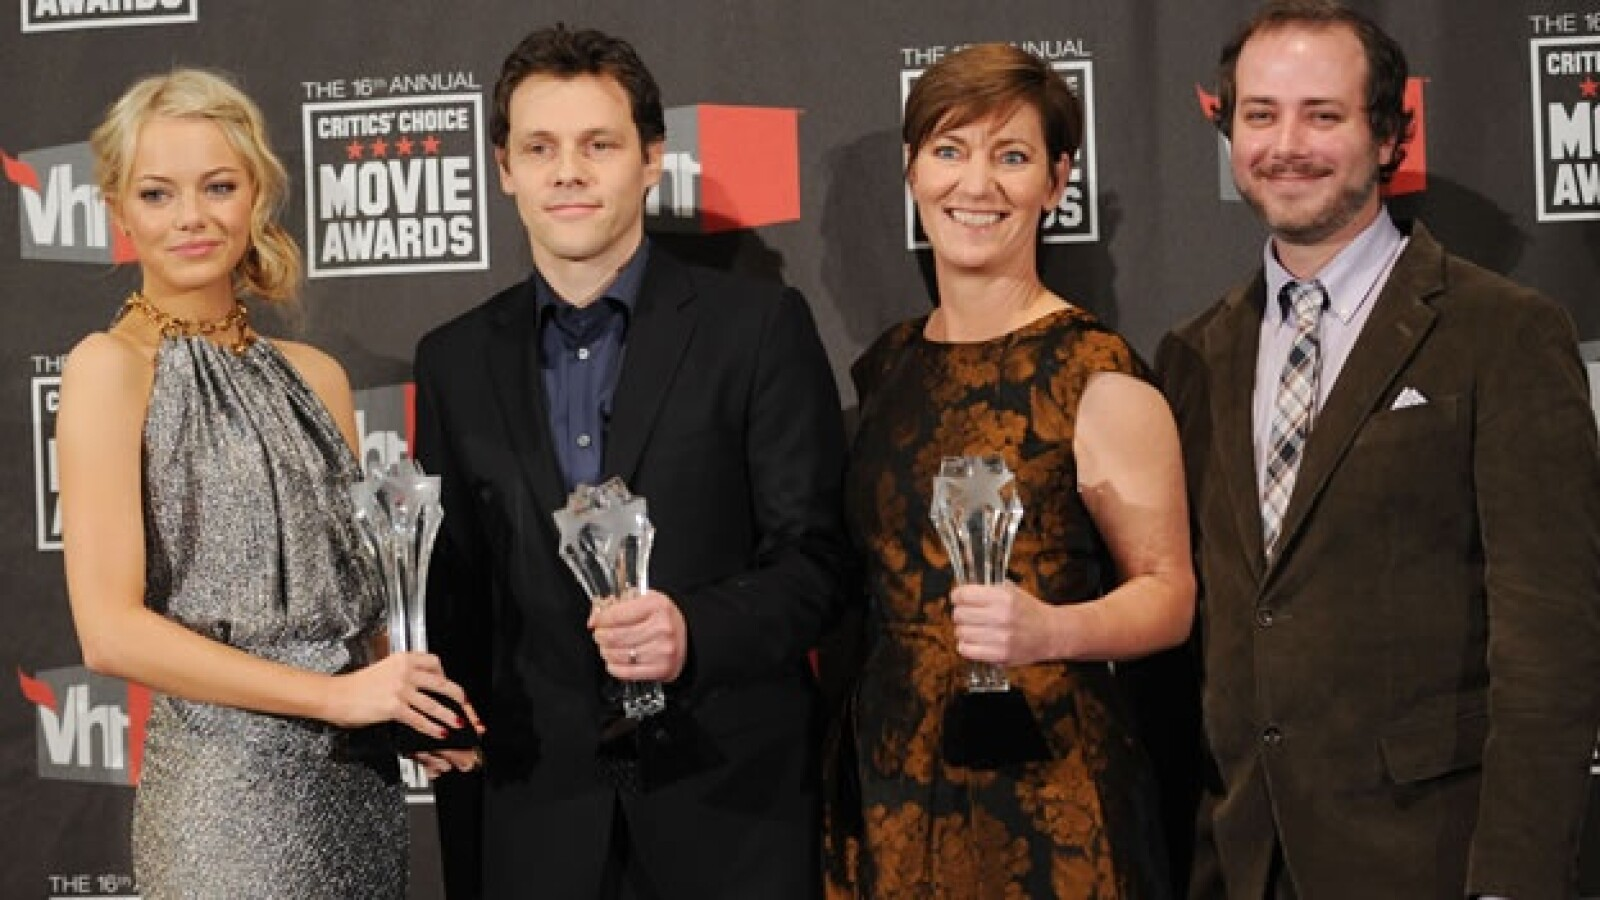 annual Critics' Choice Movie Awards